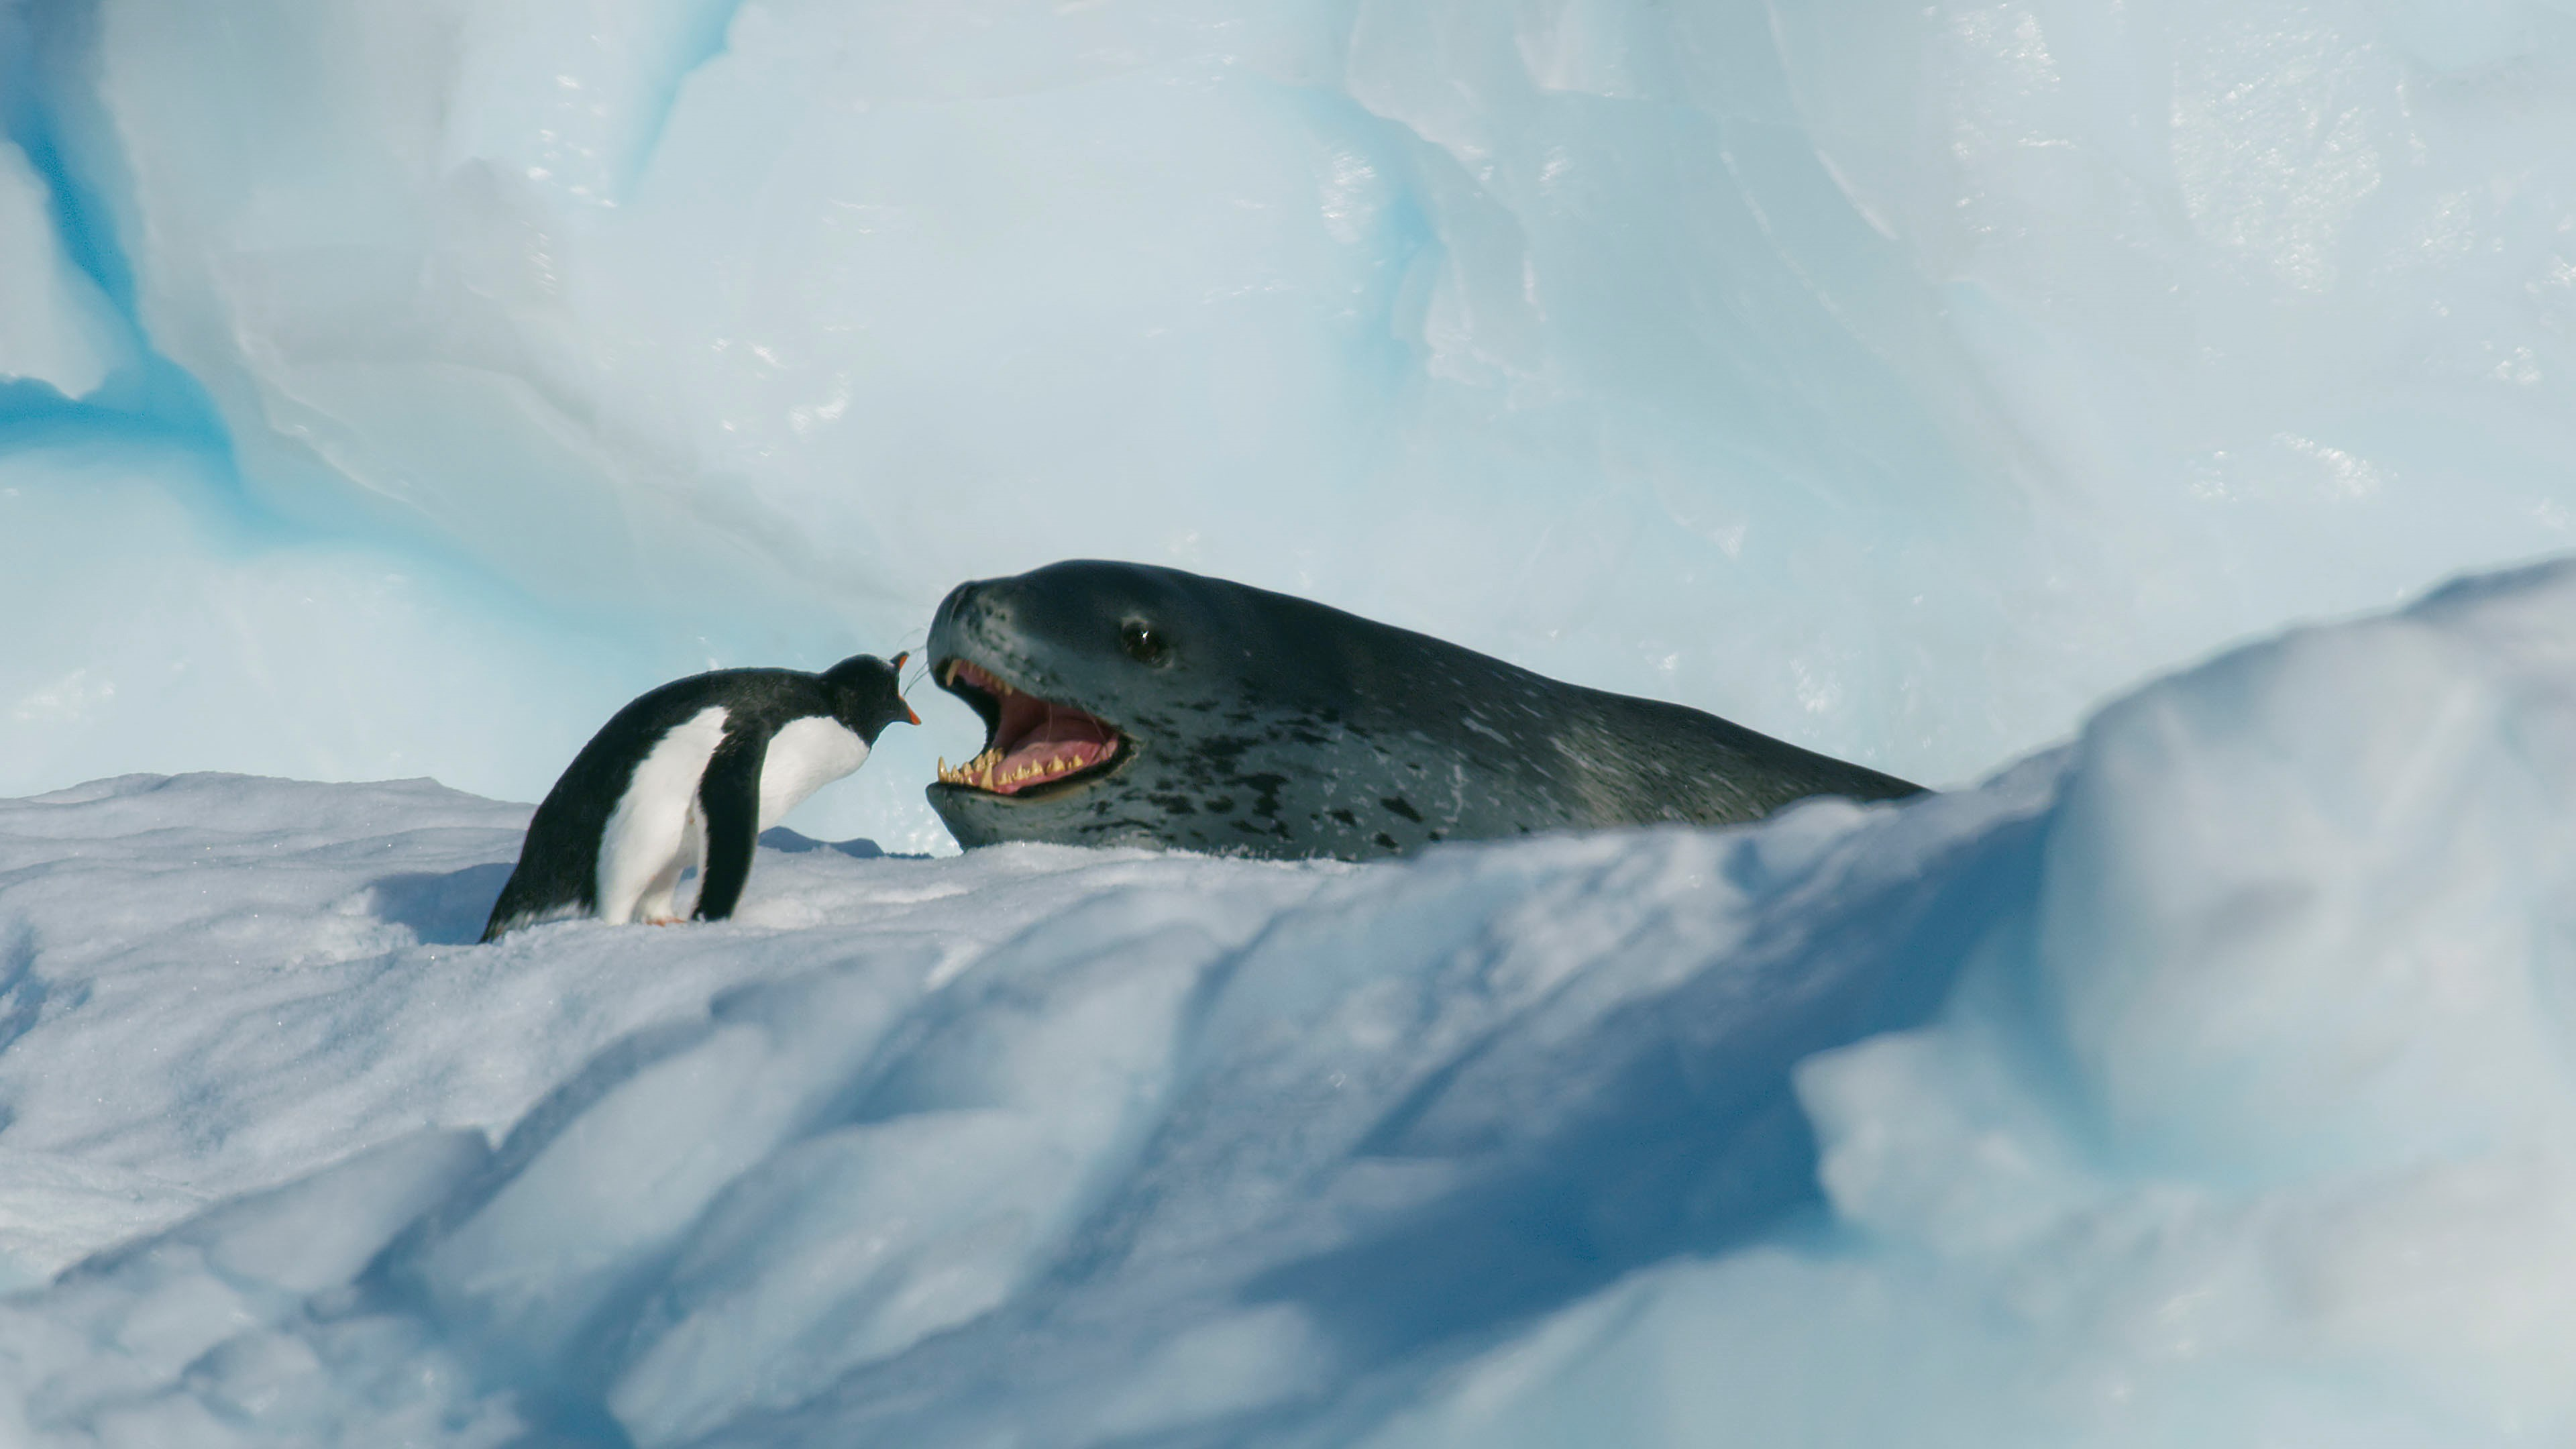 A gentoo penguin comes face-to-face with its main predator, the leopard seal